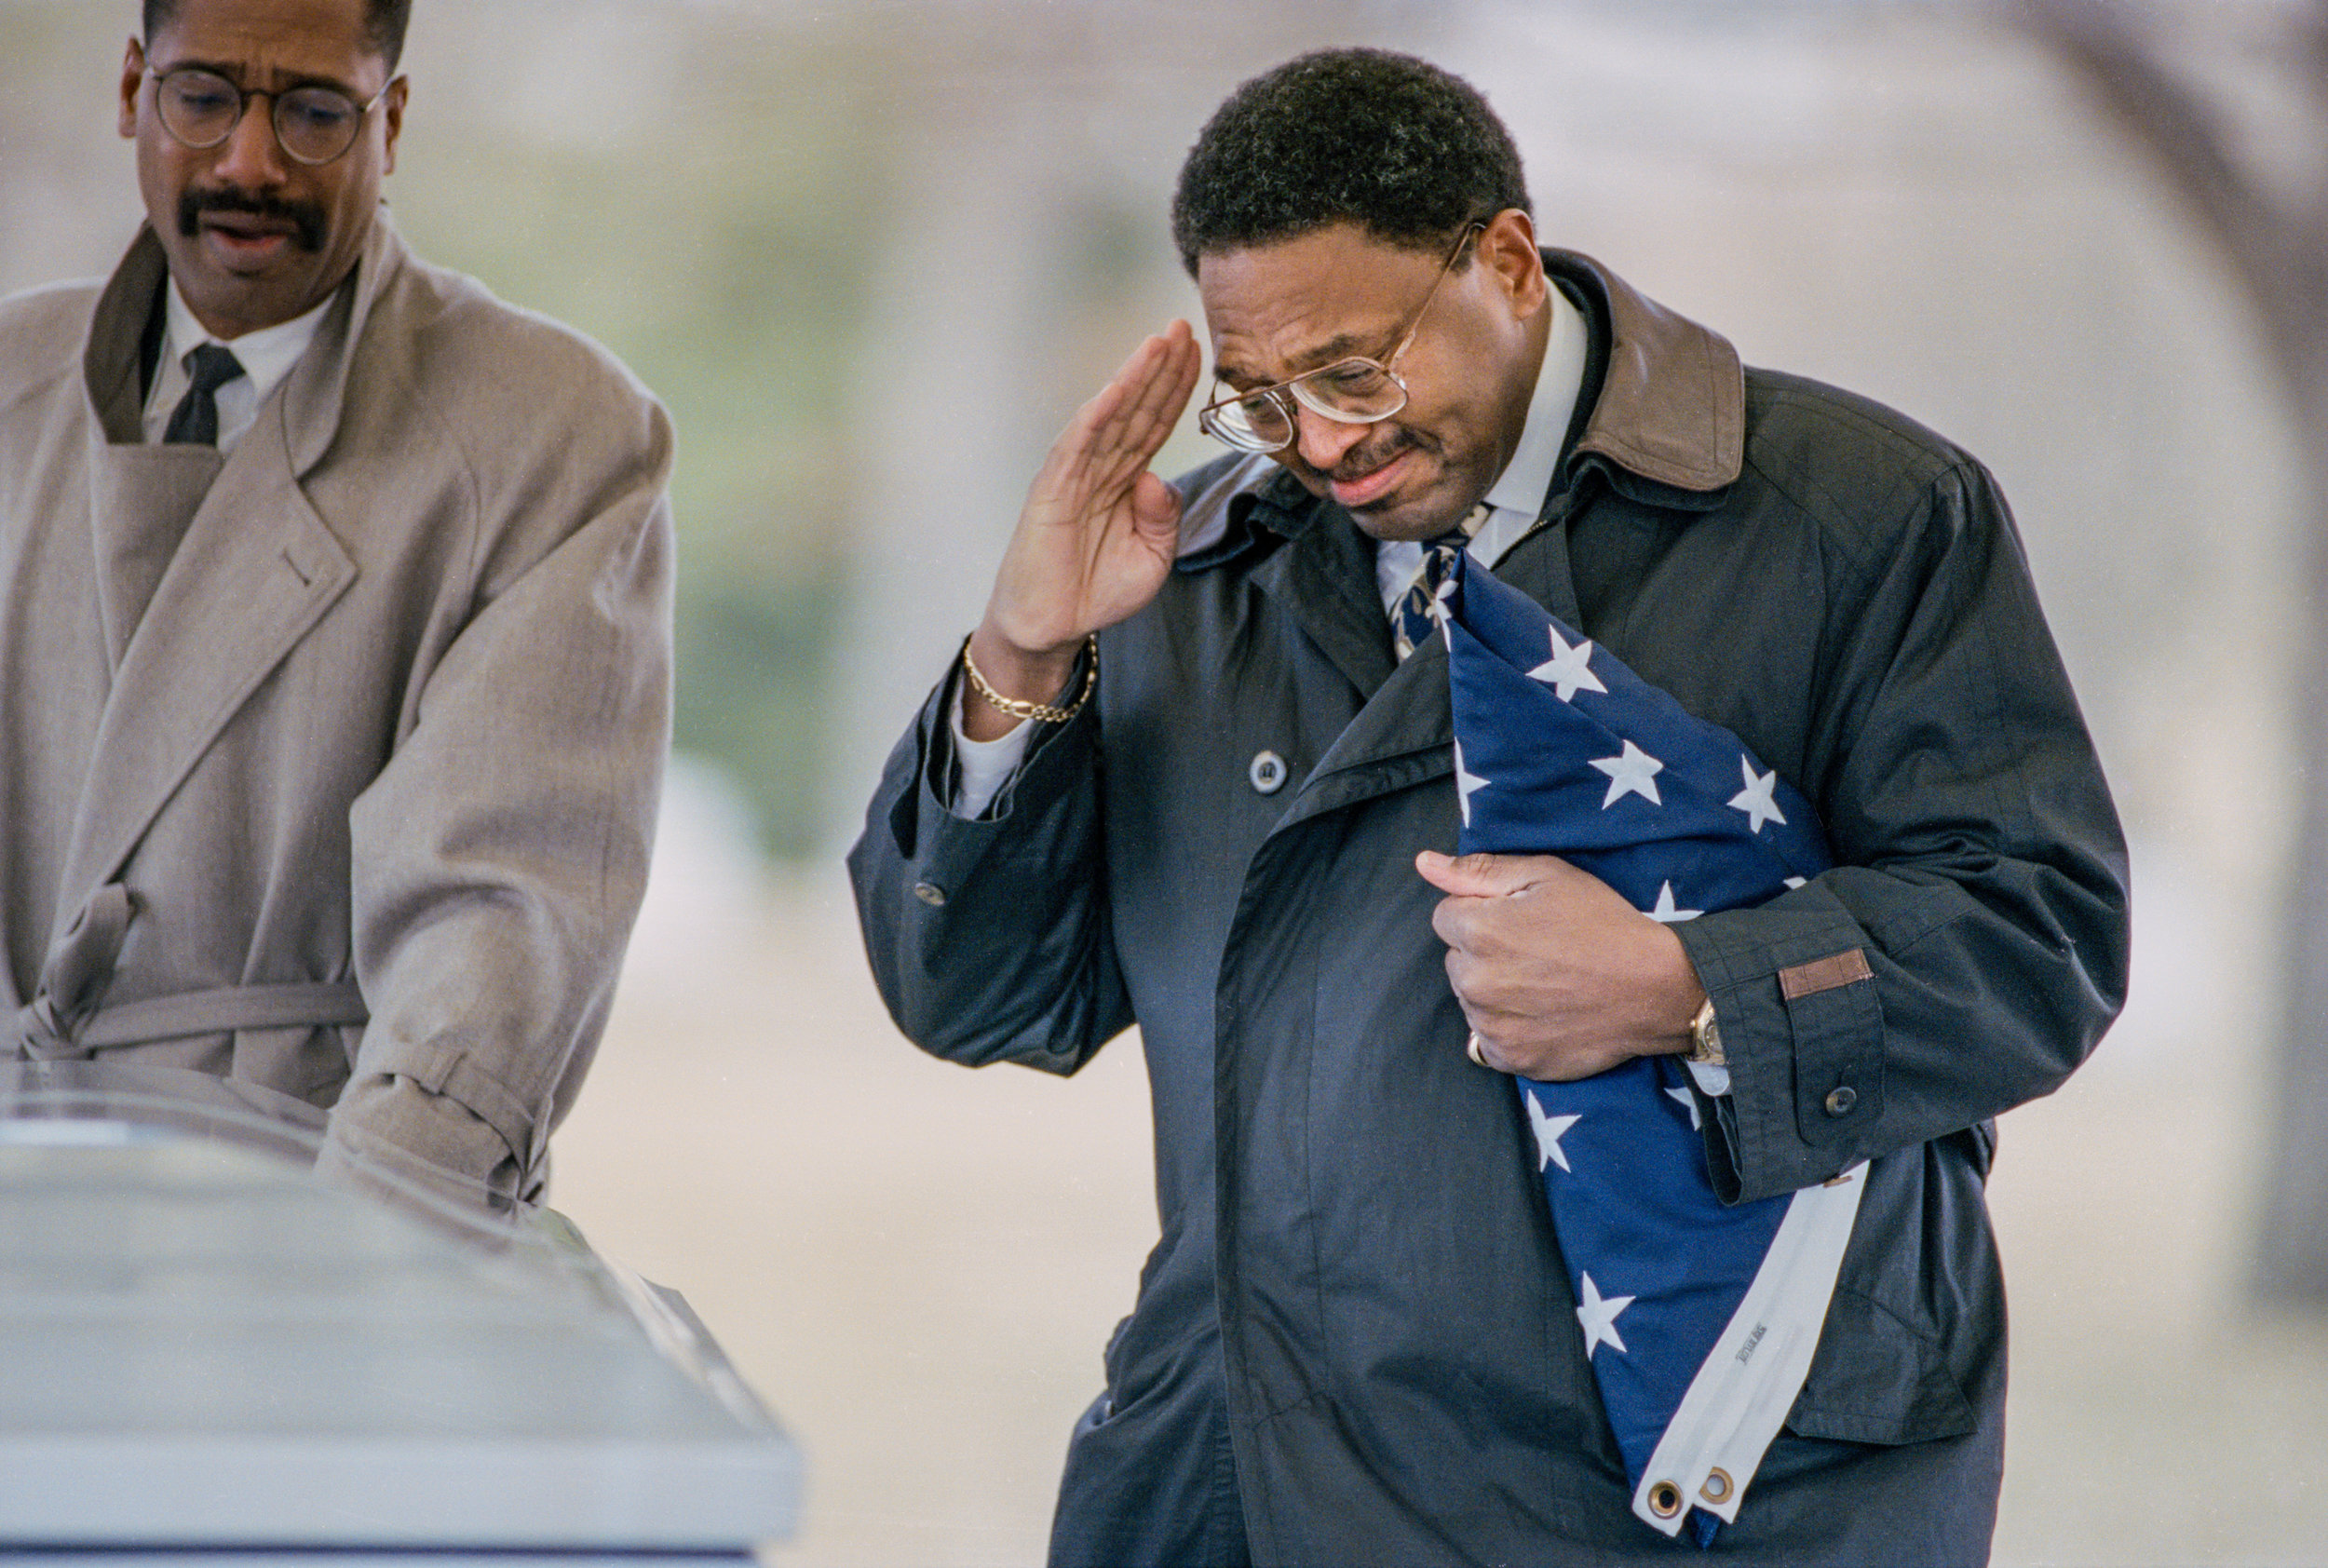 John Porter salutes the casket of his son, Marine Corps Lance Corporal Christian Porter, during funeral services at Camp Butler National Cemetery in Springfield, Illinois